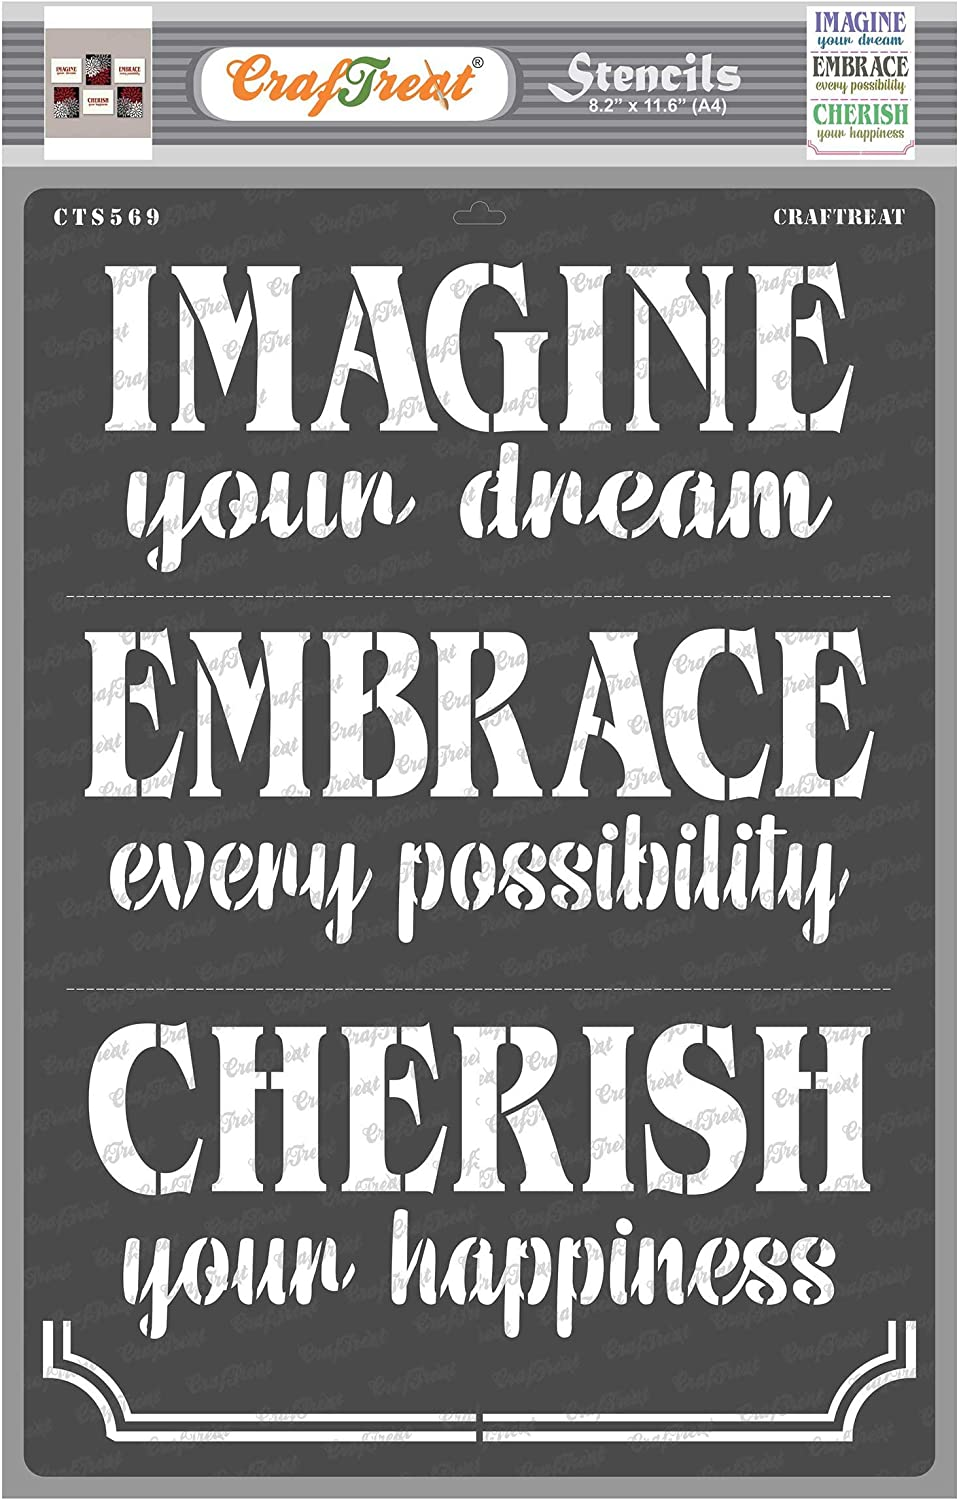 CrafTreat Quotes Stencils for Painting on Wood, Canvas, Paper, Fabric, Wall and Tile - Imagine Embrace Cherish - Size: A4 - Reusable DIY Art and Craft Stencils for Home Decor - Word Stencils Phrases